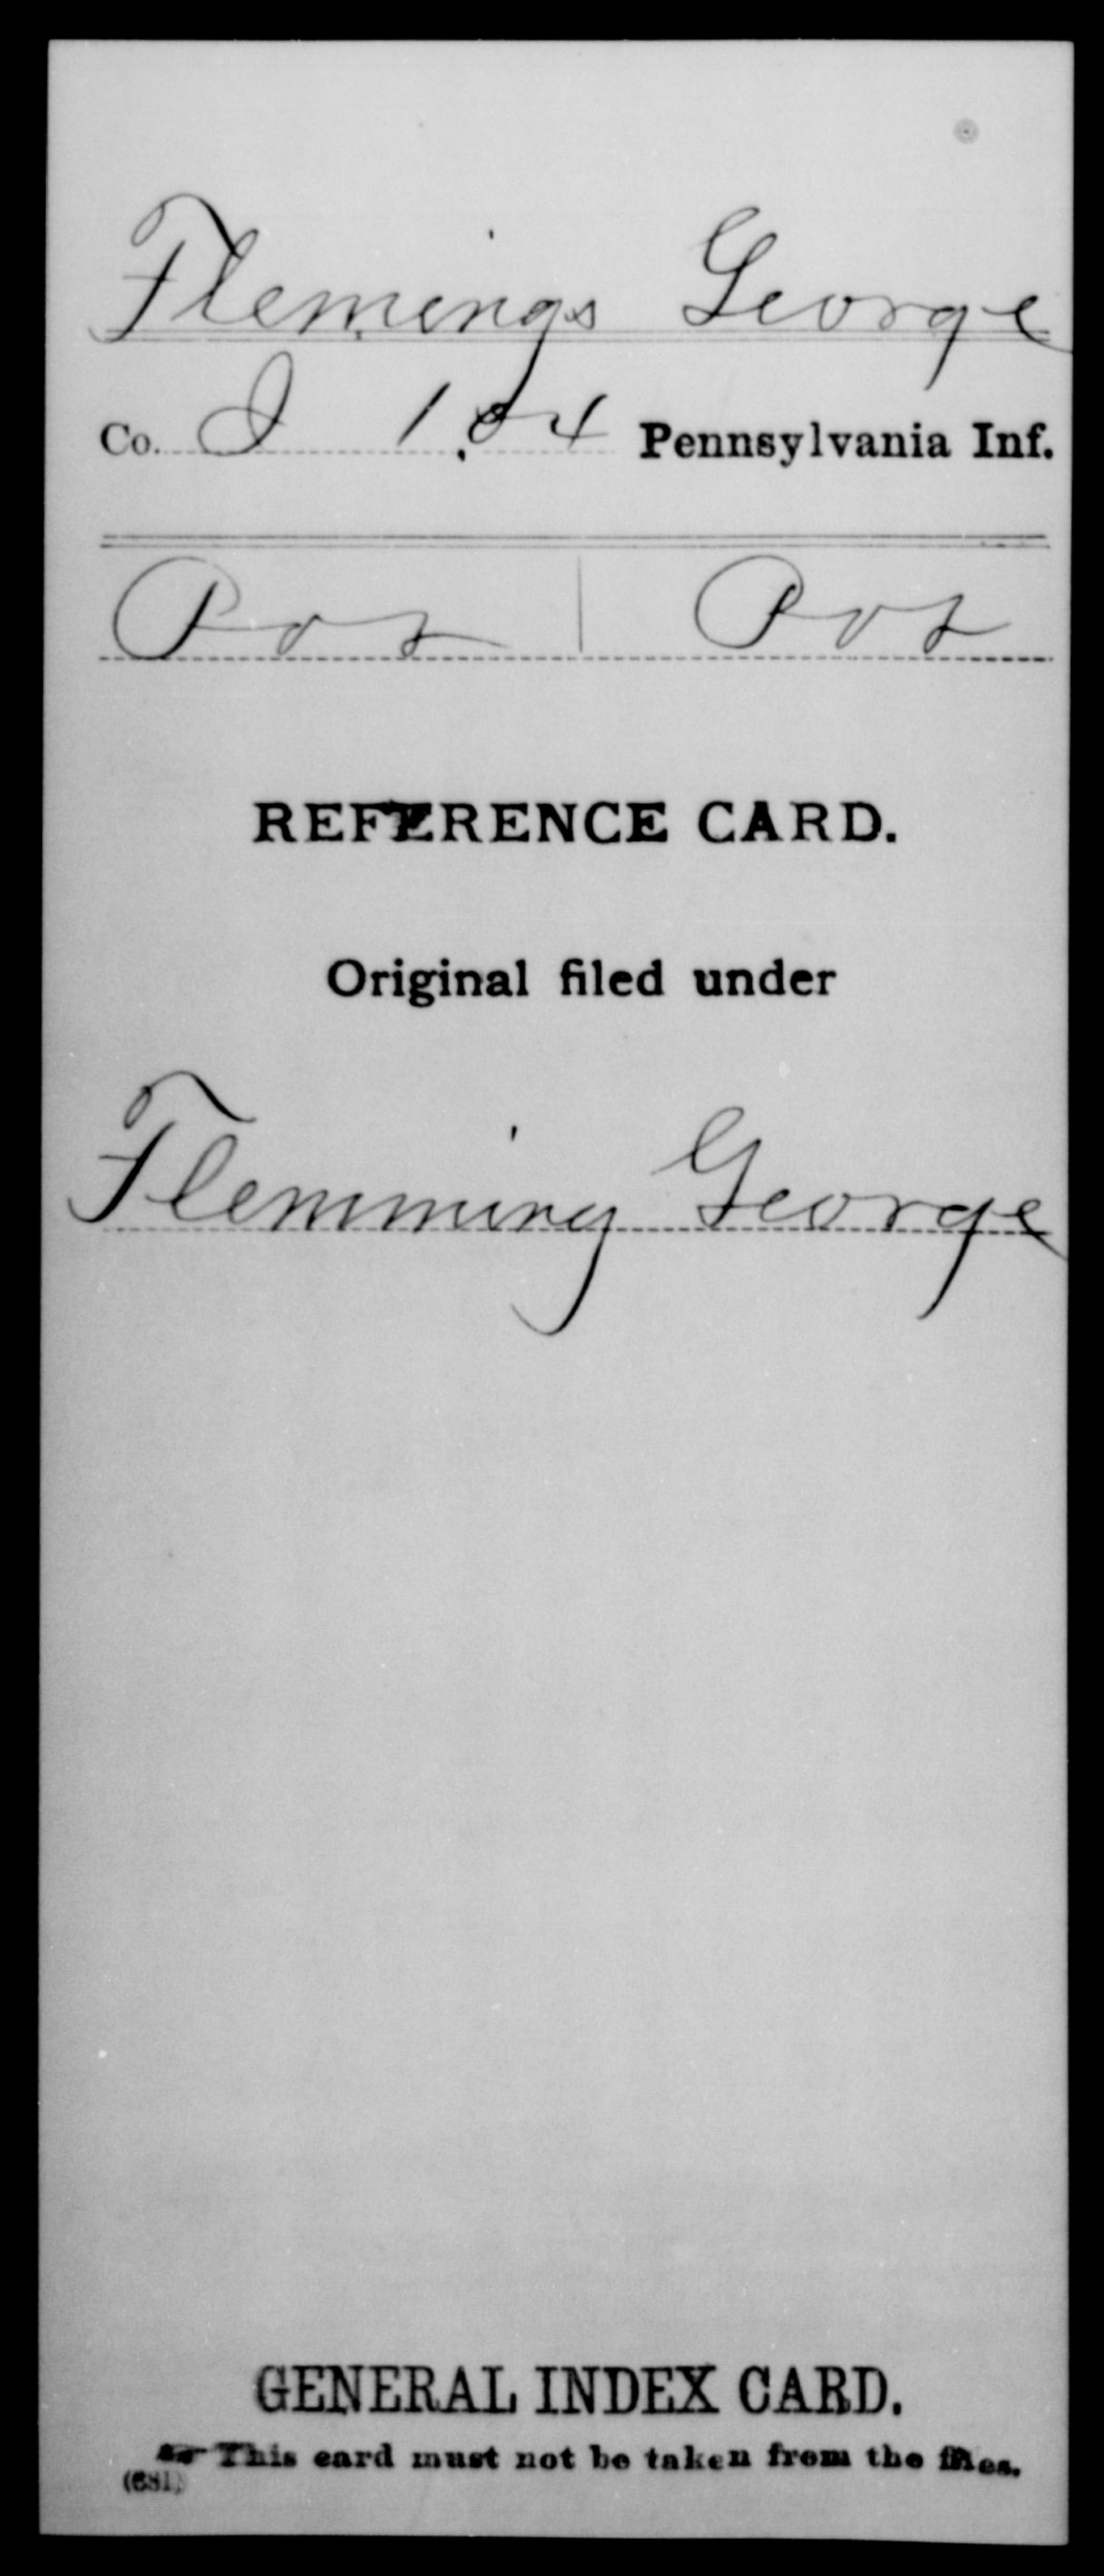 [Pennsylvania] Flemings, George - 104th Infantry, Company J